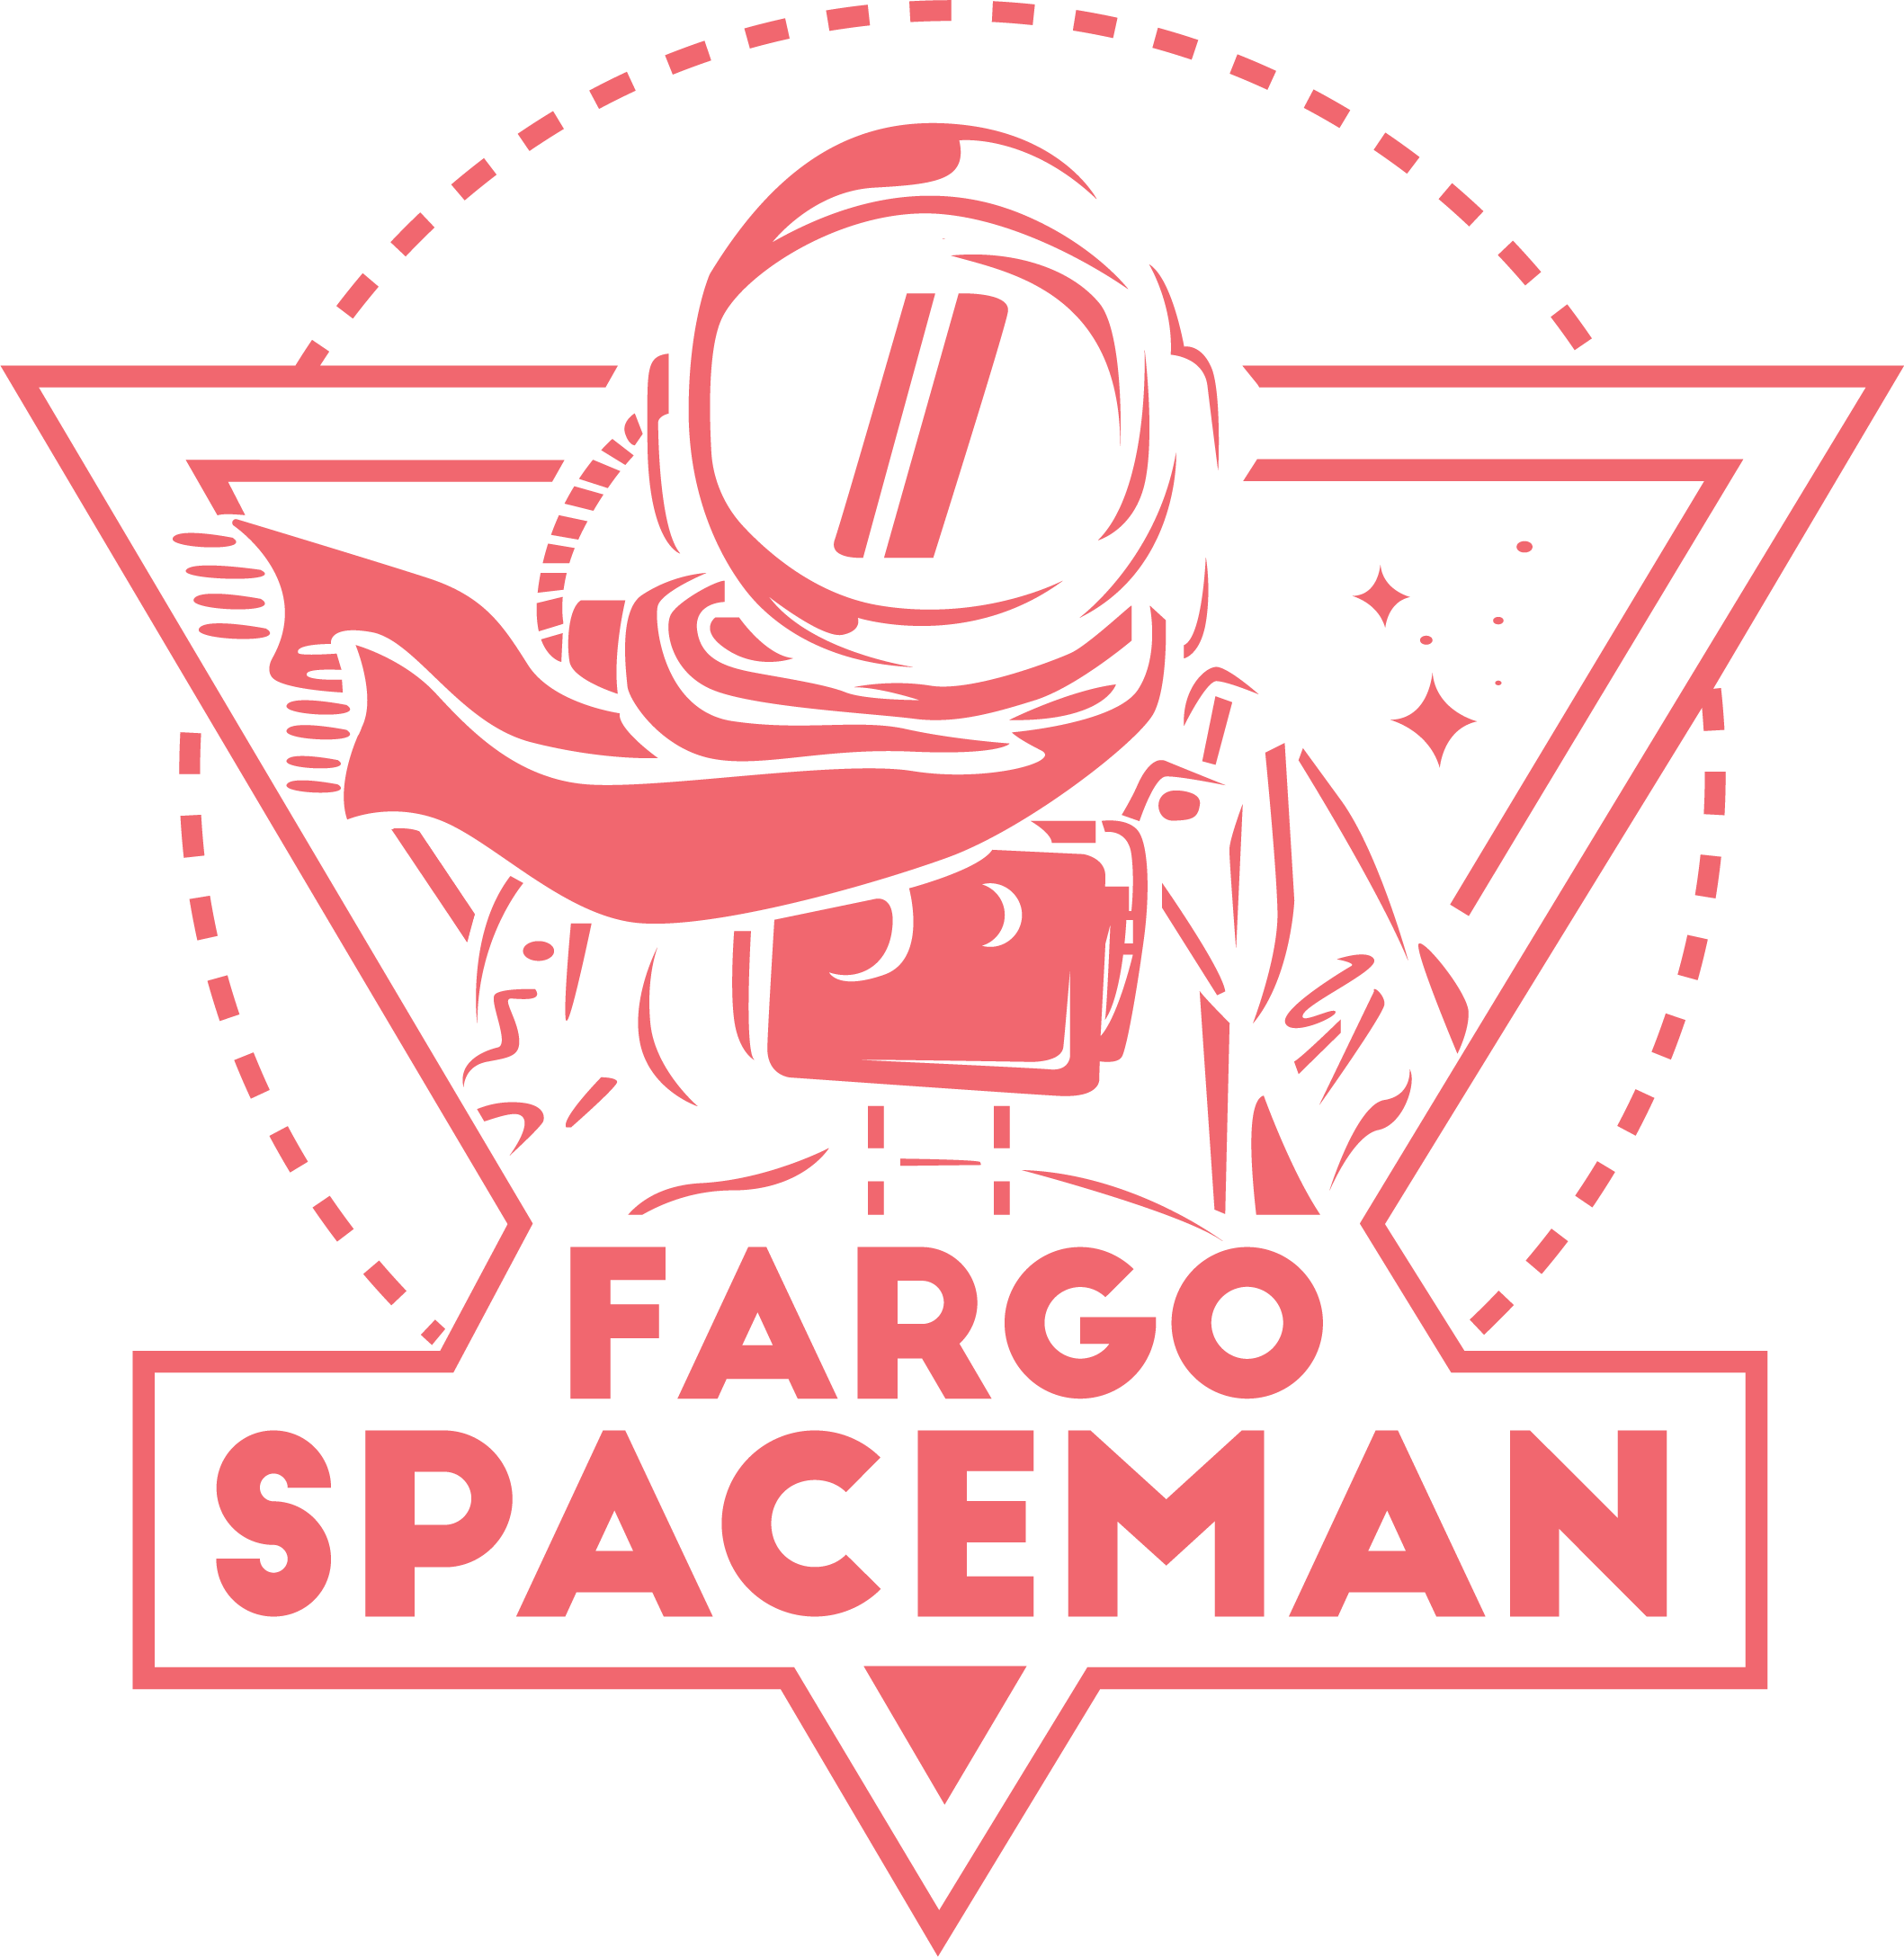 Exciting Spaceman logo for clothing